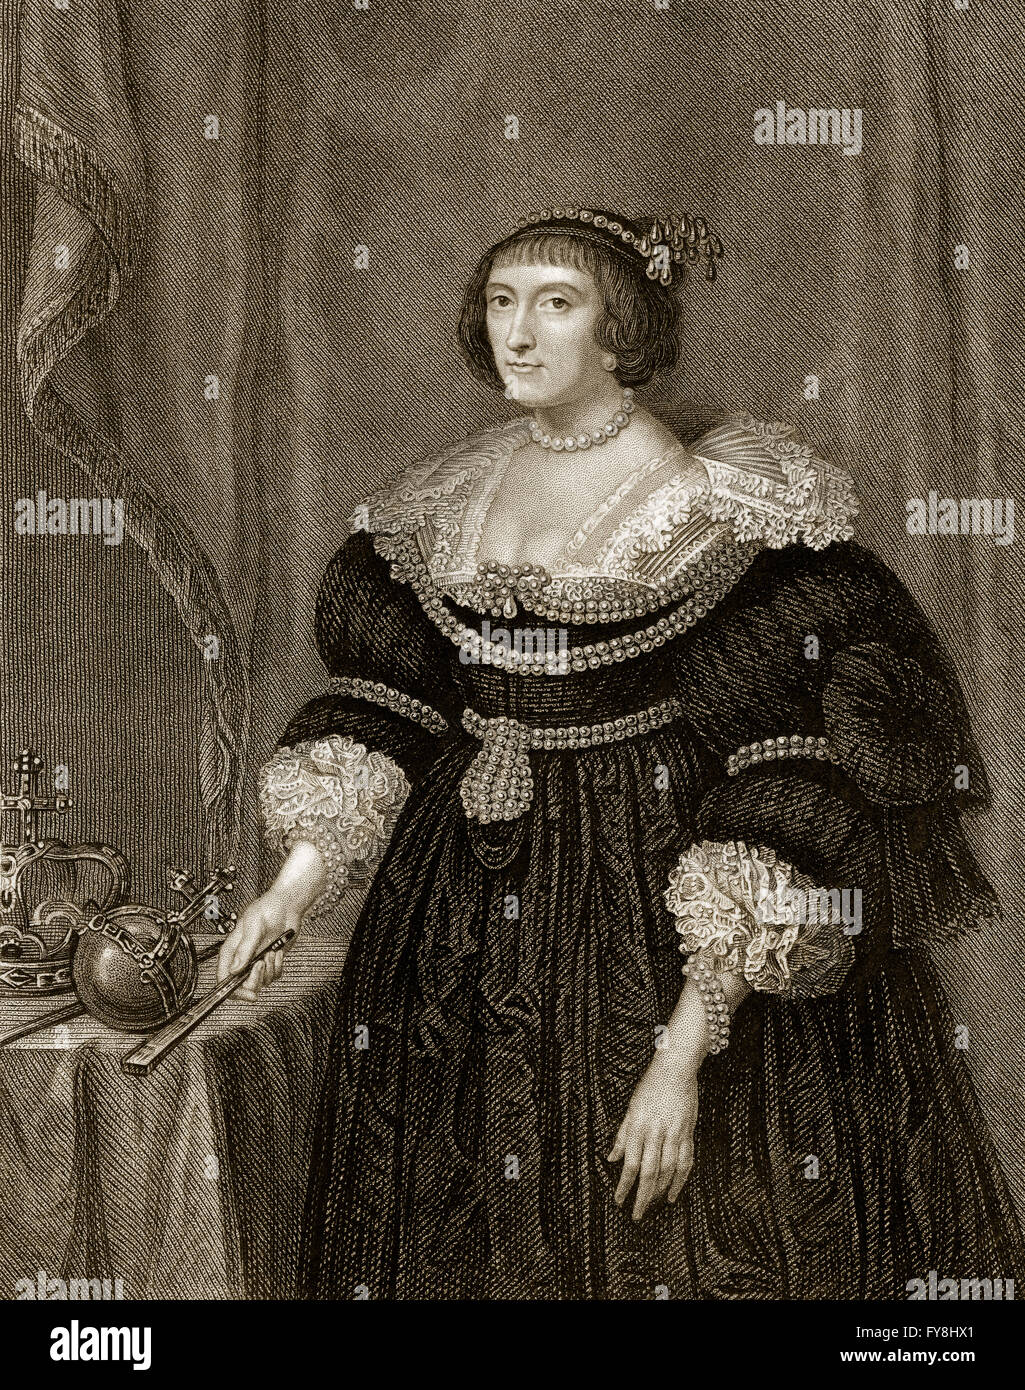 Elizabeth Stuart, the Winter Queen, 1596 - 1662, as the wife of Frederick  V, Elector Palatine, Electress Palatine, and Queen of